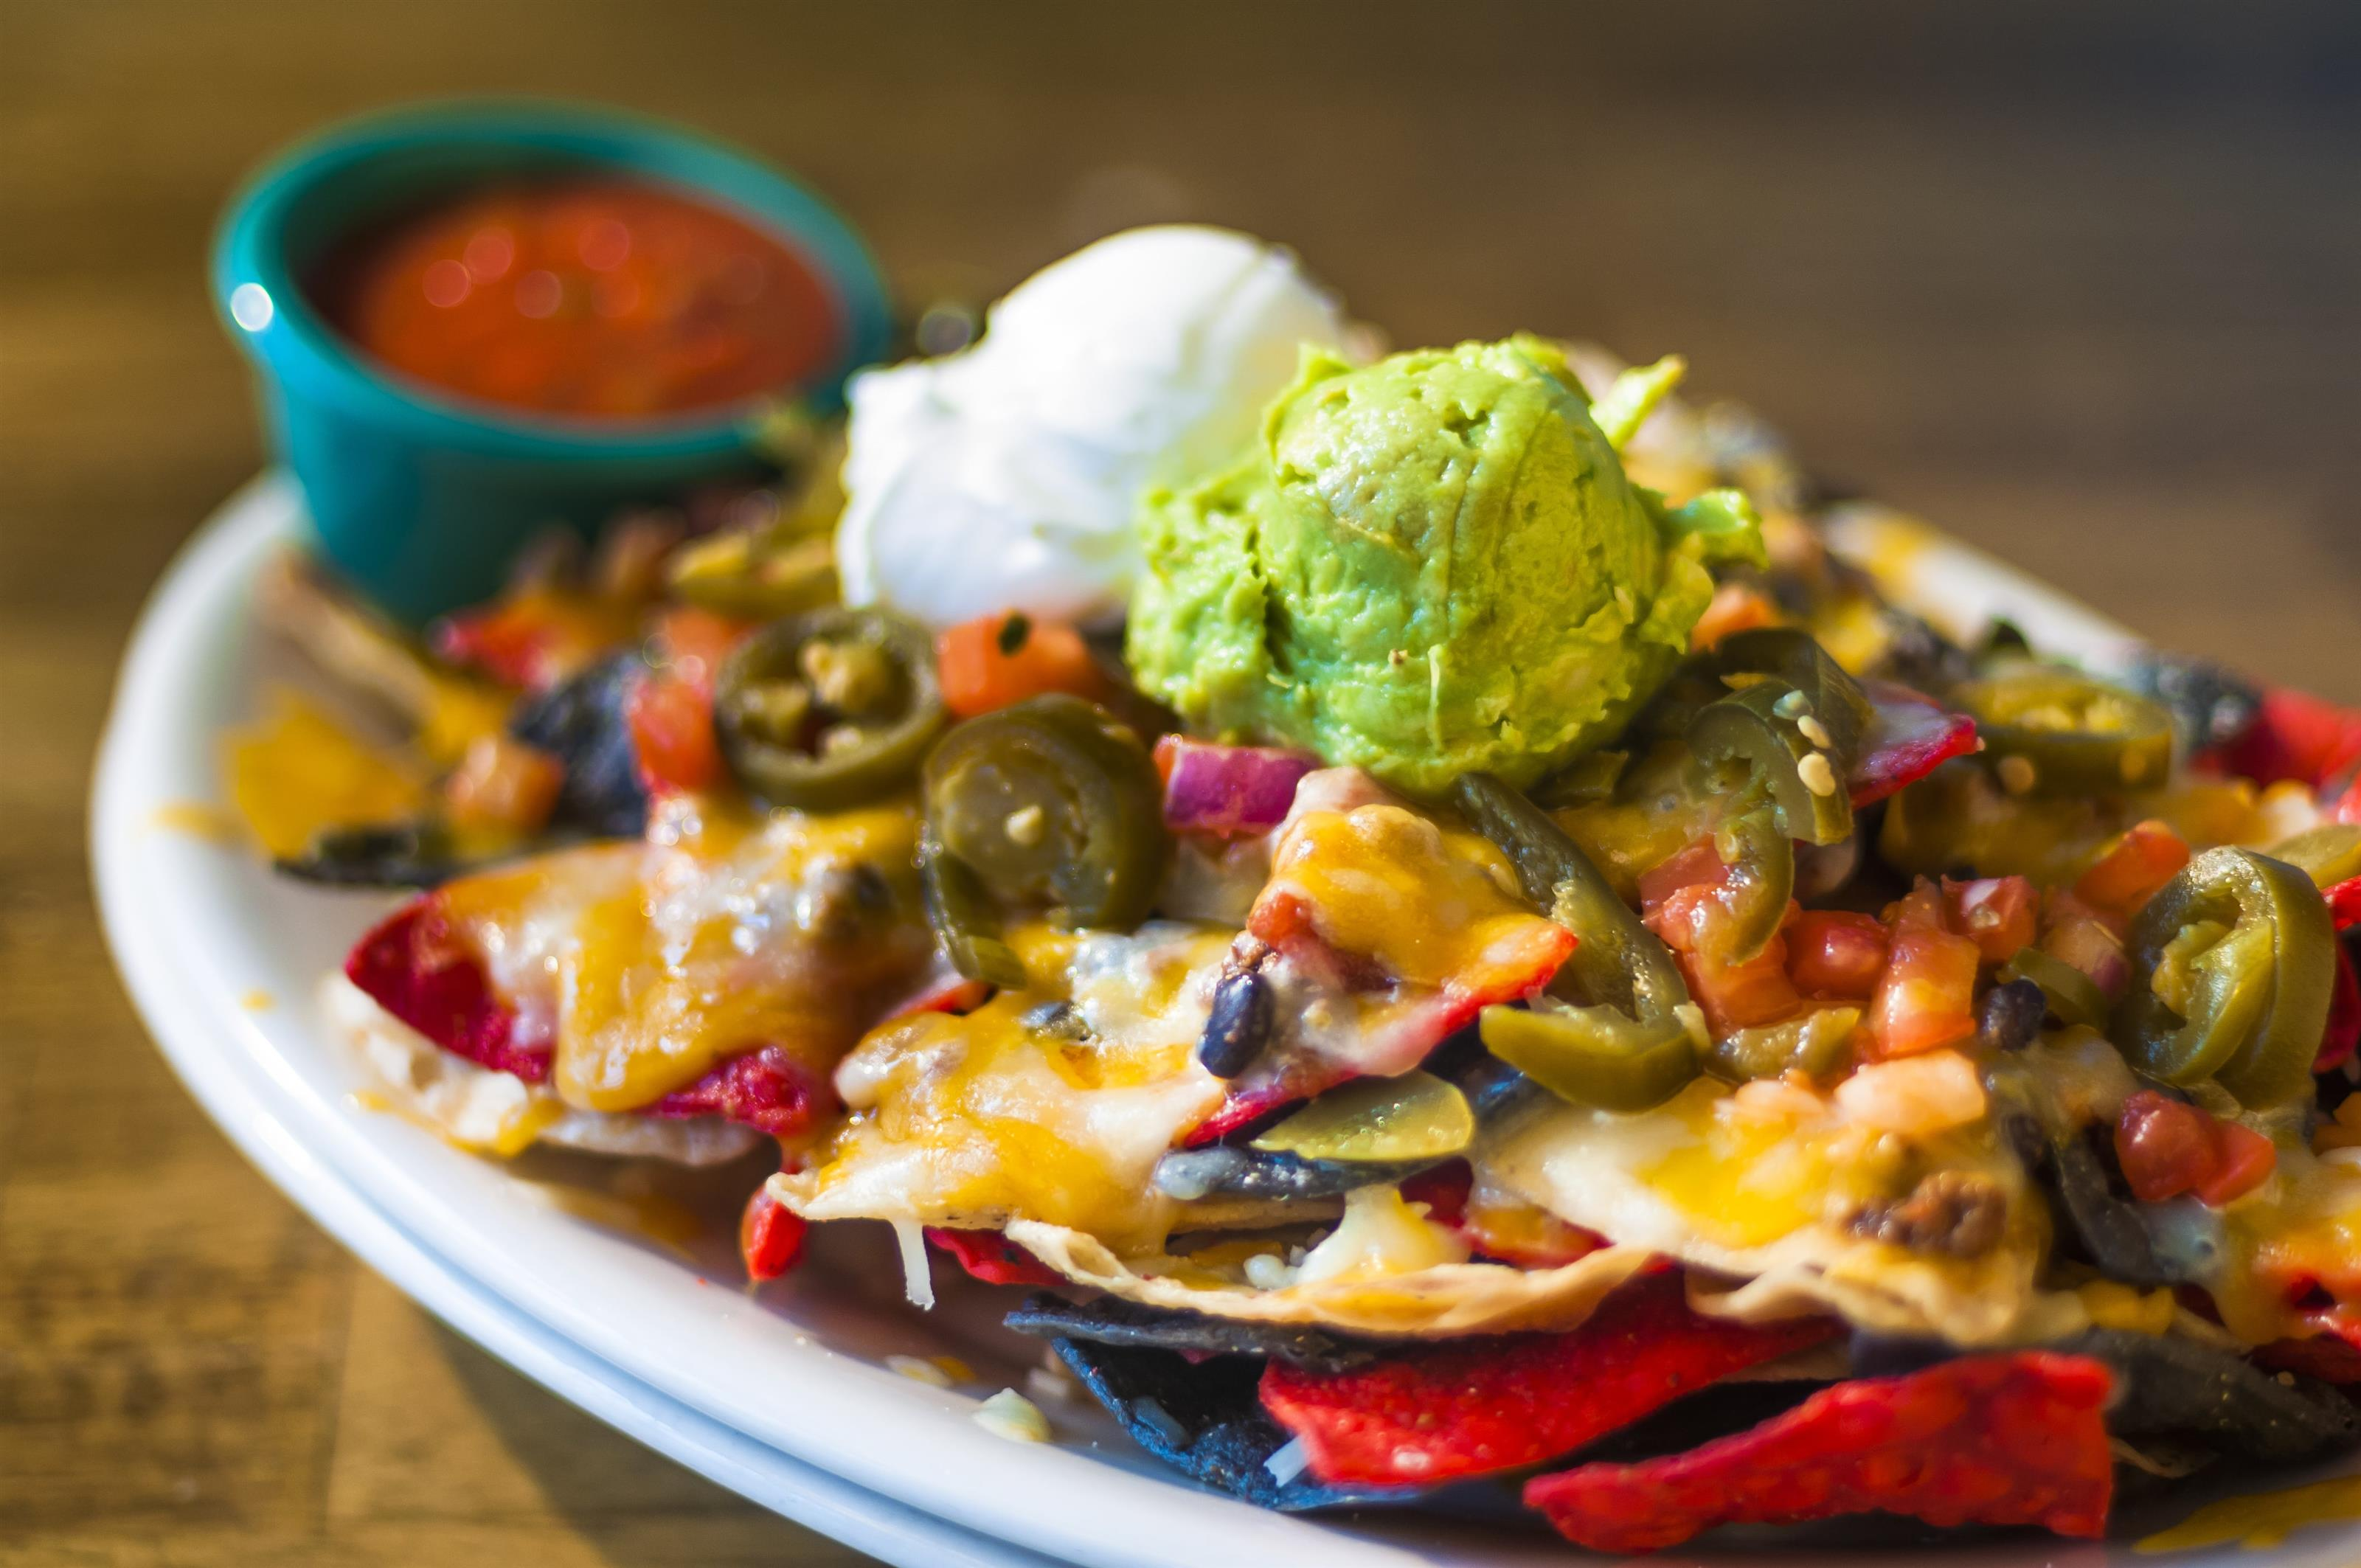 Nachos on a plate with sour cream and guacamole and a side of salsa